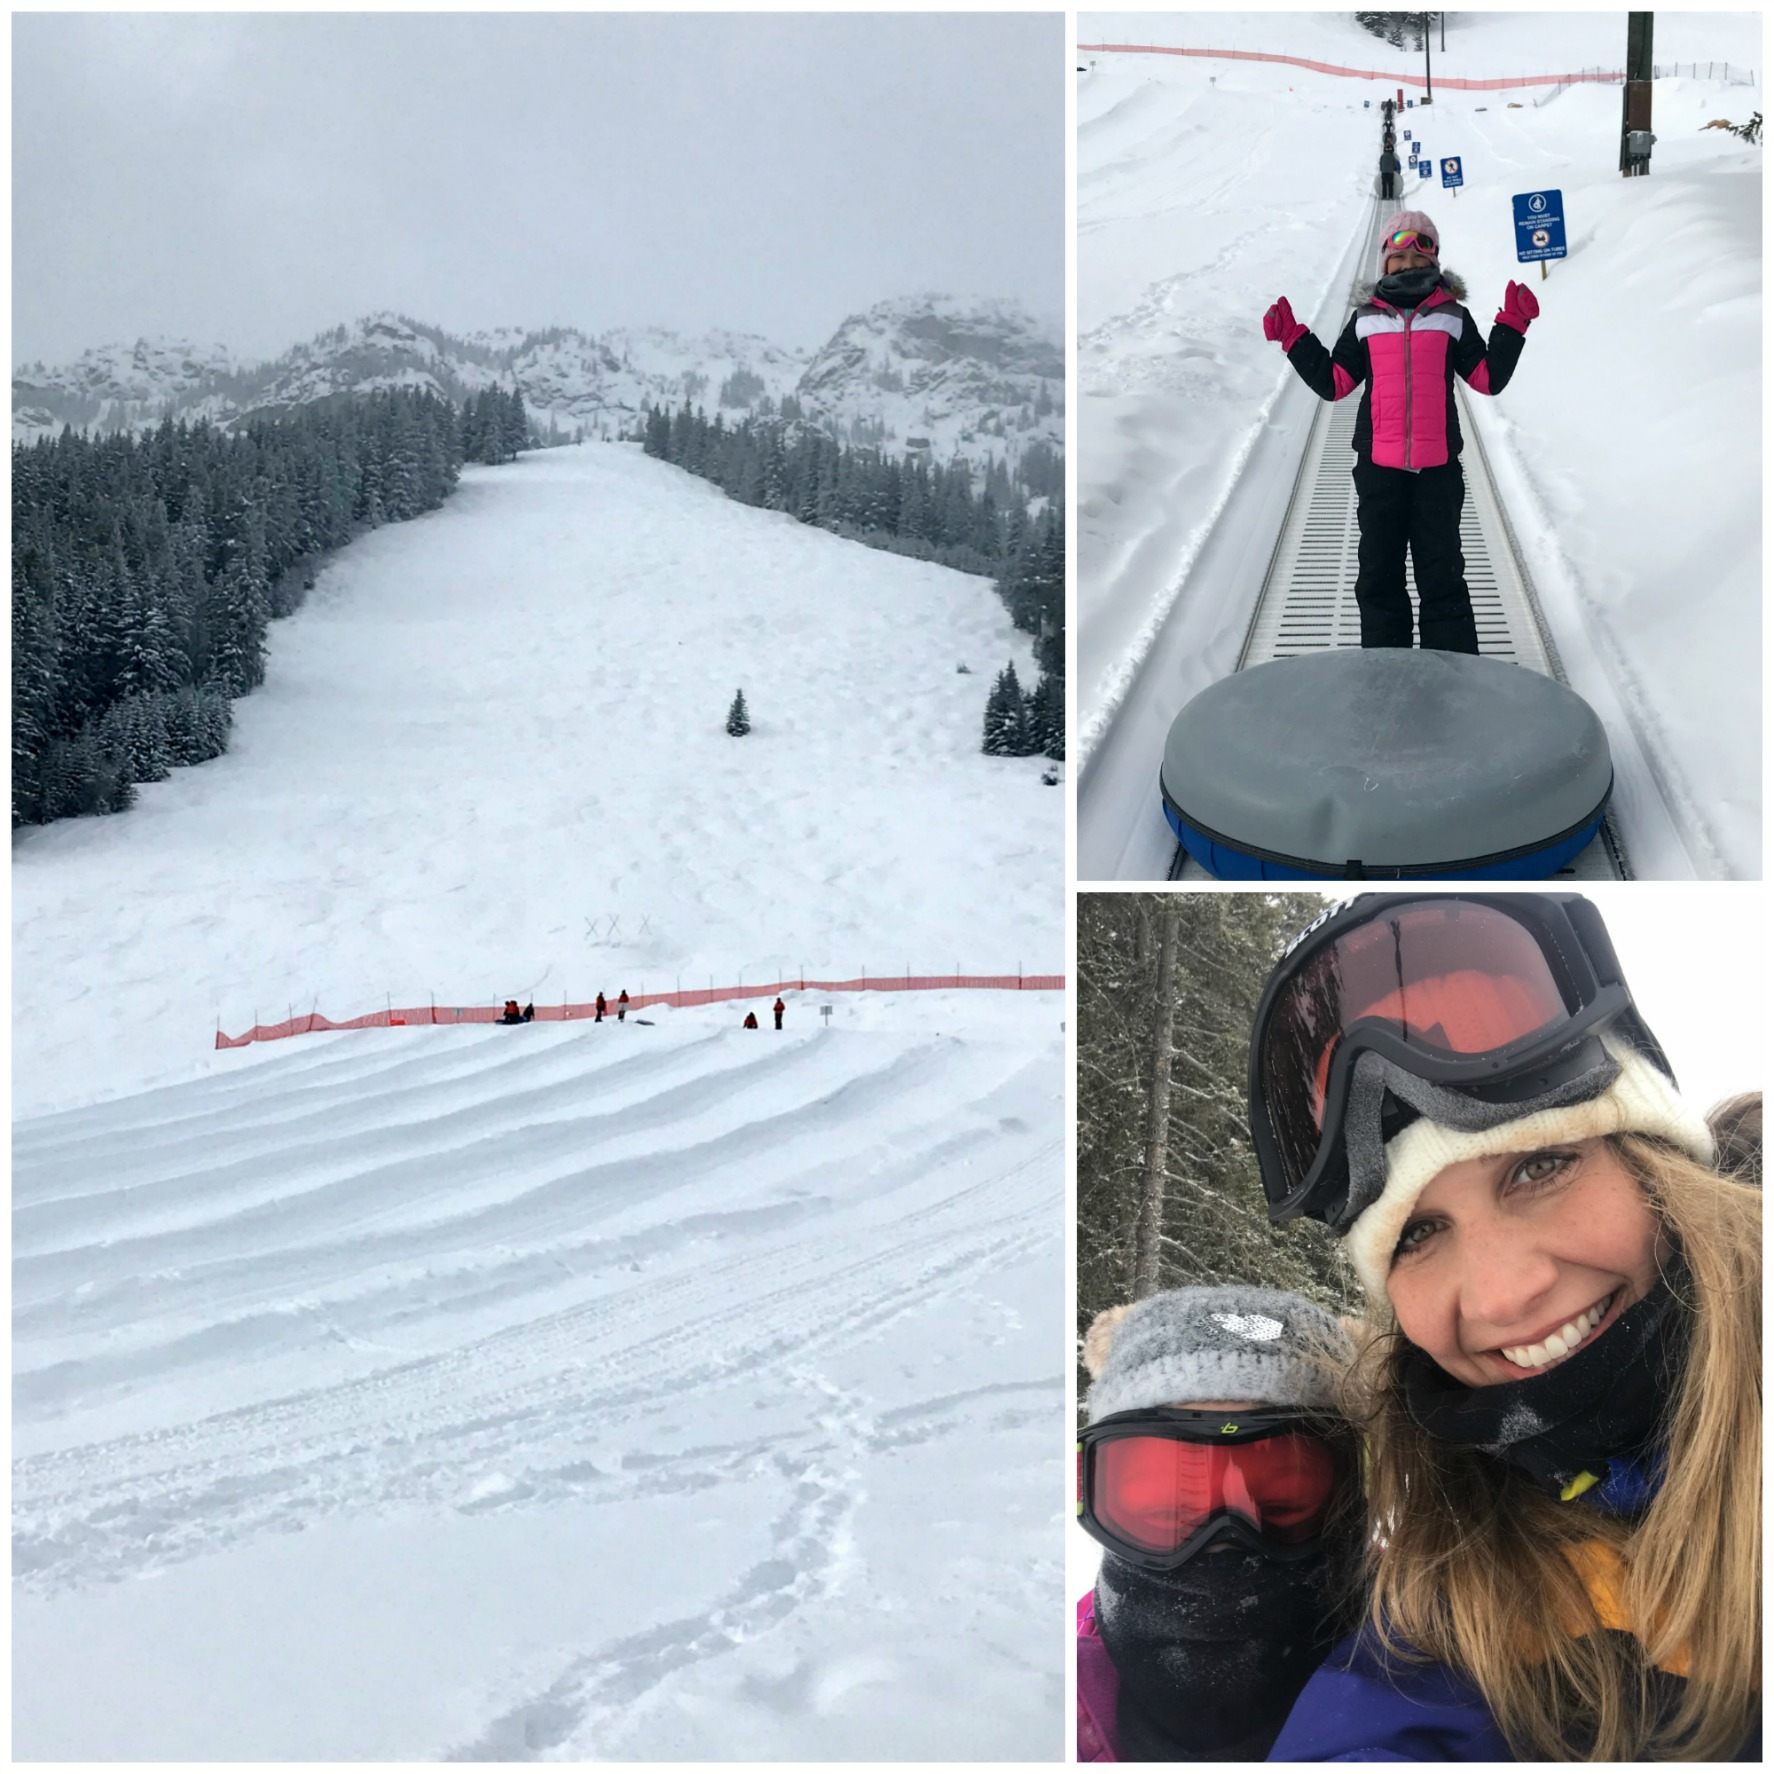 Looking for the perfect place to go on a family ski trip? Try Banff in the Canadian Rockies and the family-friendly resort Sunshine Village!